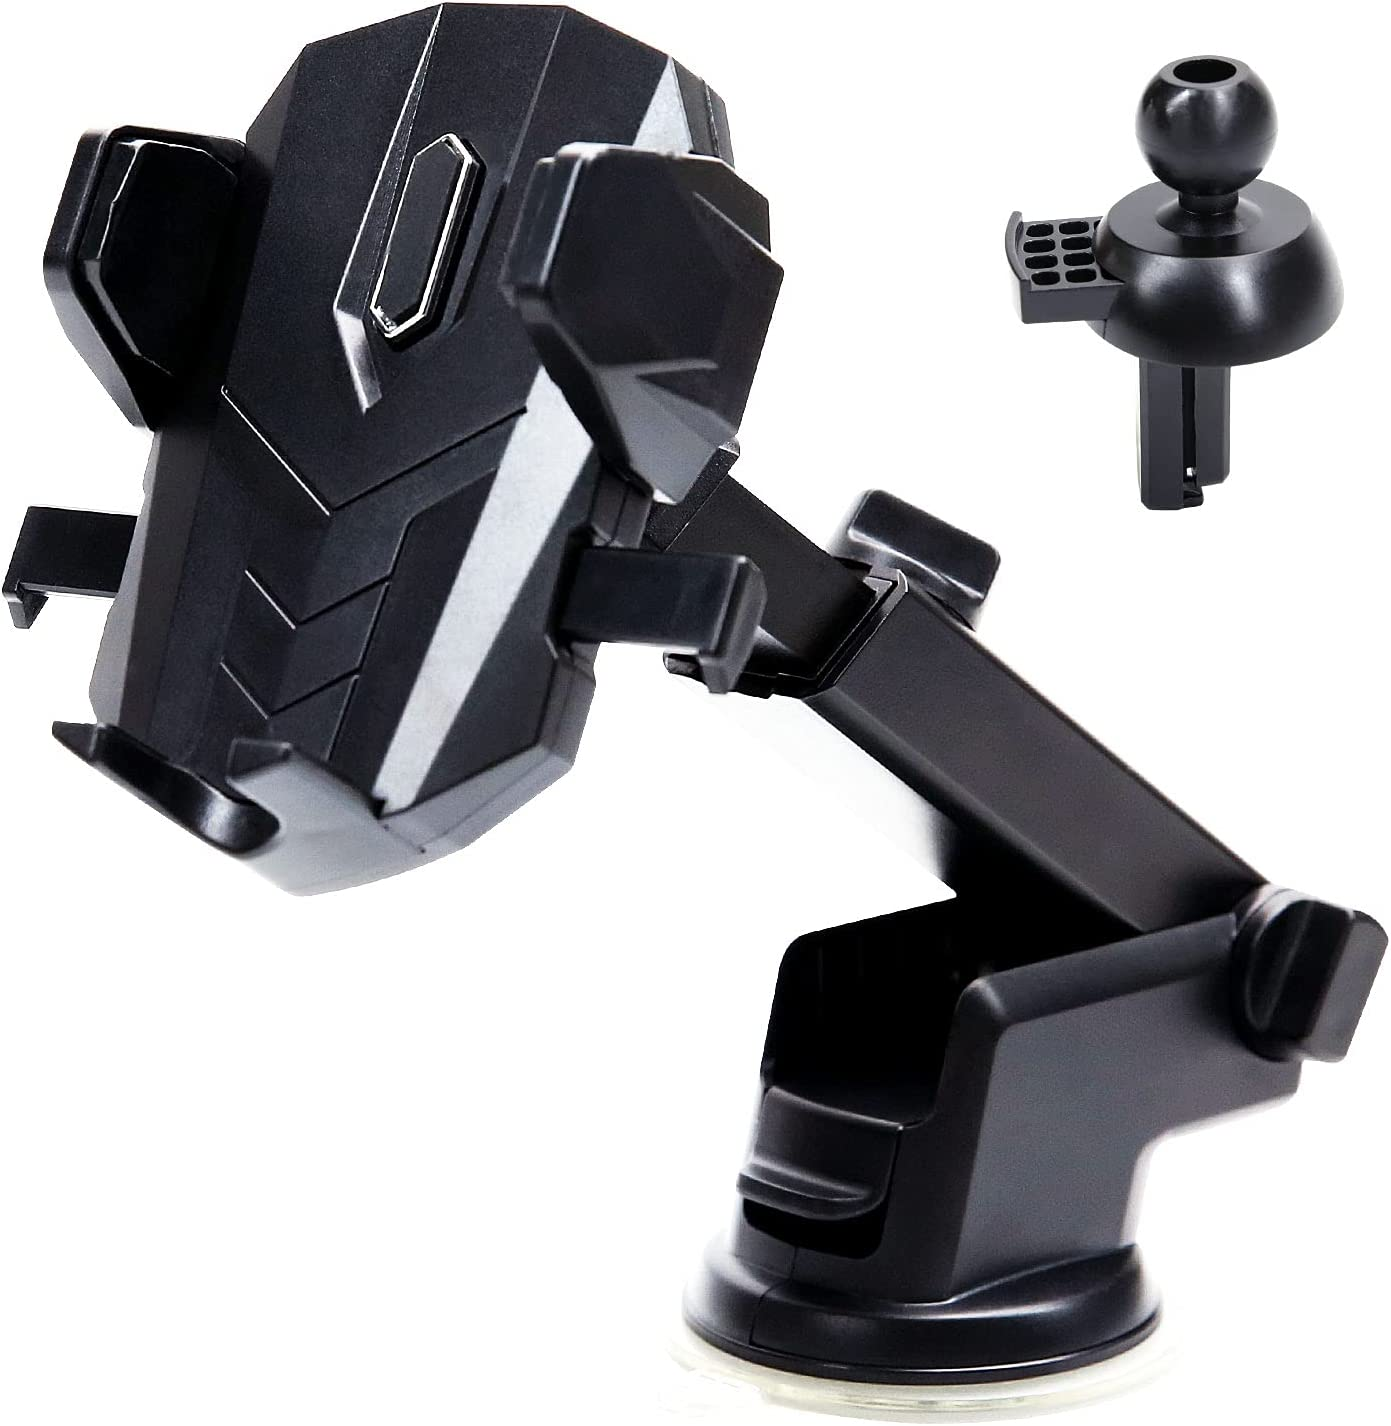 Car Phone Holder Mount, Phone Holder for Car Dashboard/Windscreen/Air Vent/Desk, Auto Lock Cell Phone Holder Car, Excellent Stable and 360° Rotation, for 4.7 to 7 inch Smartphone